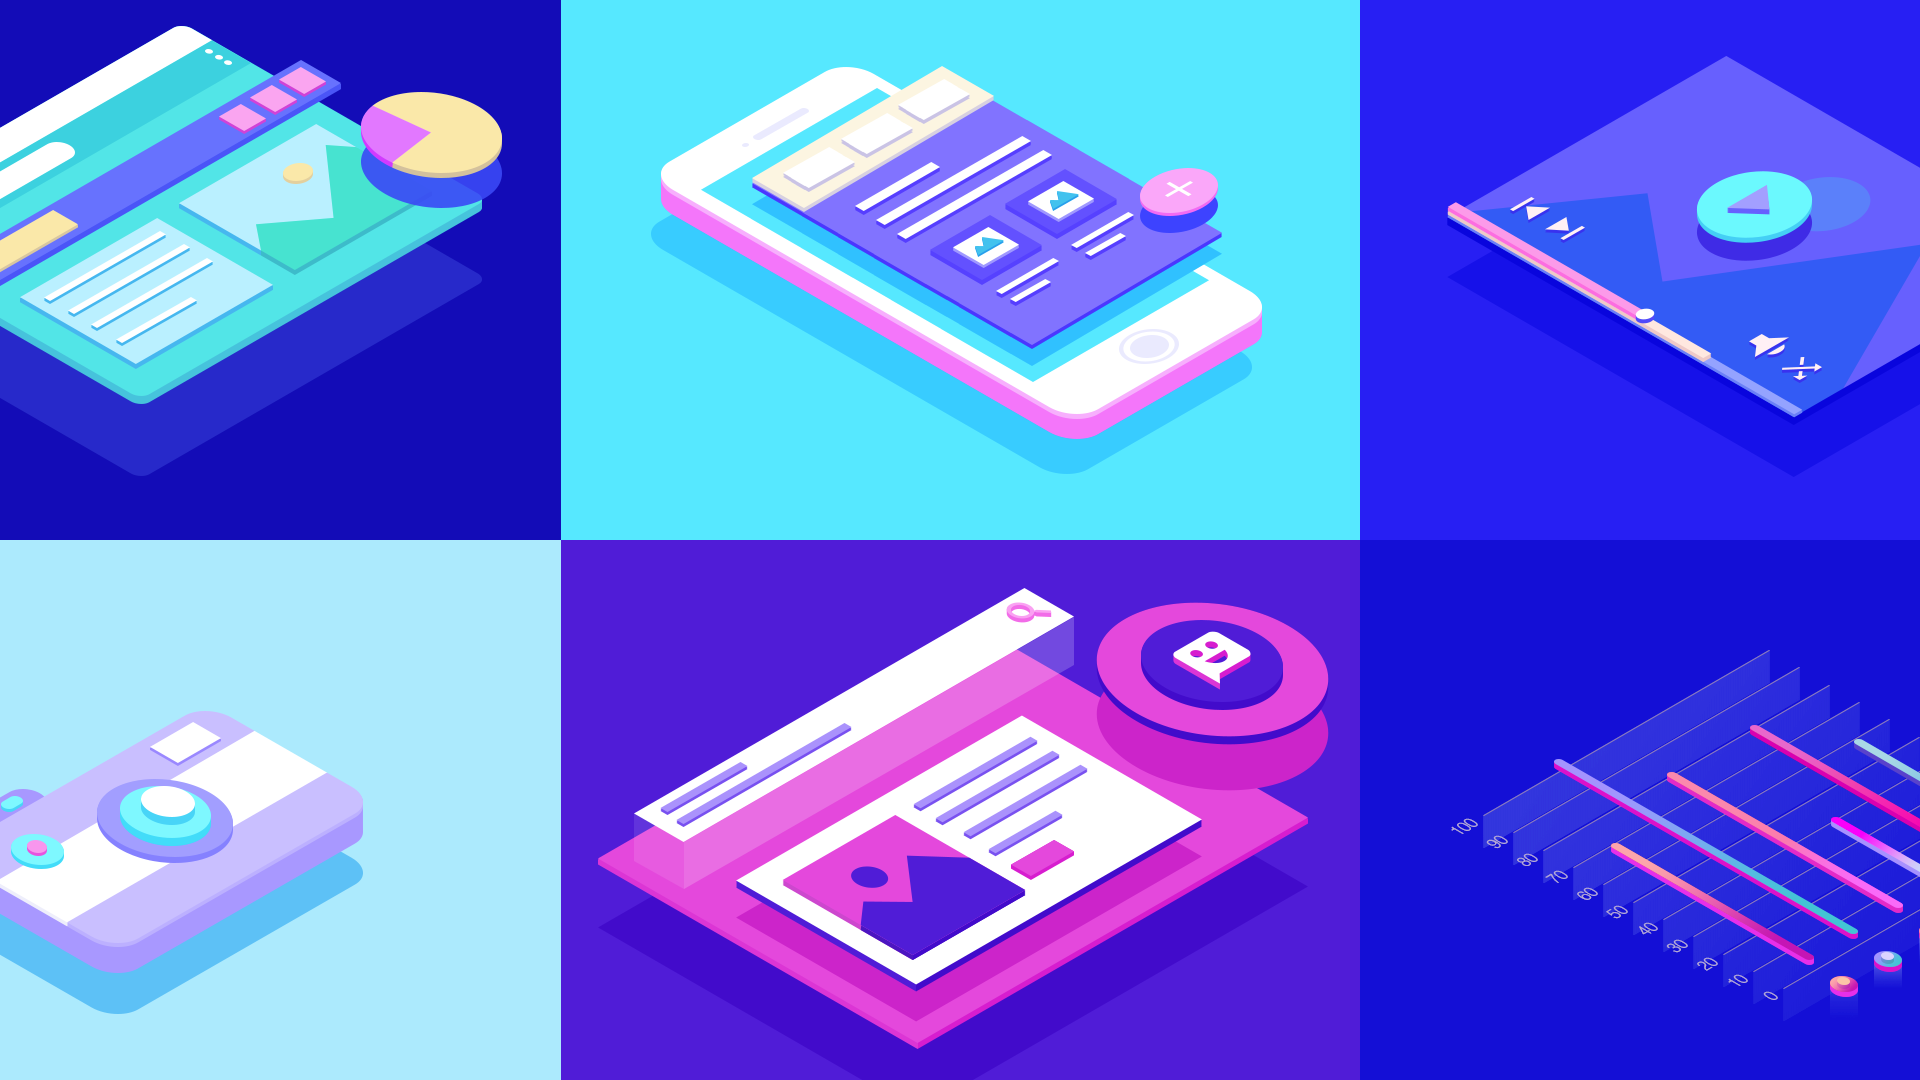 Creating Isometric Illustrations—Made Simple with the